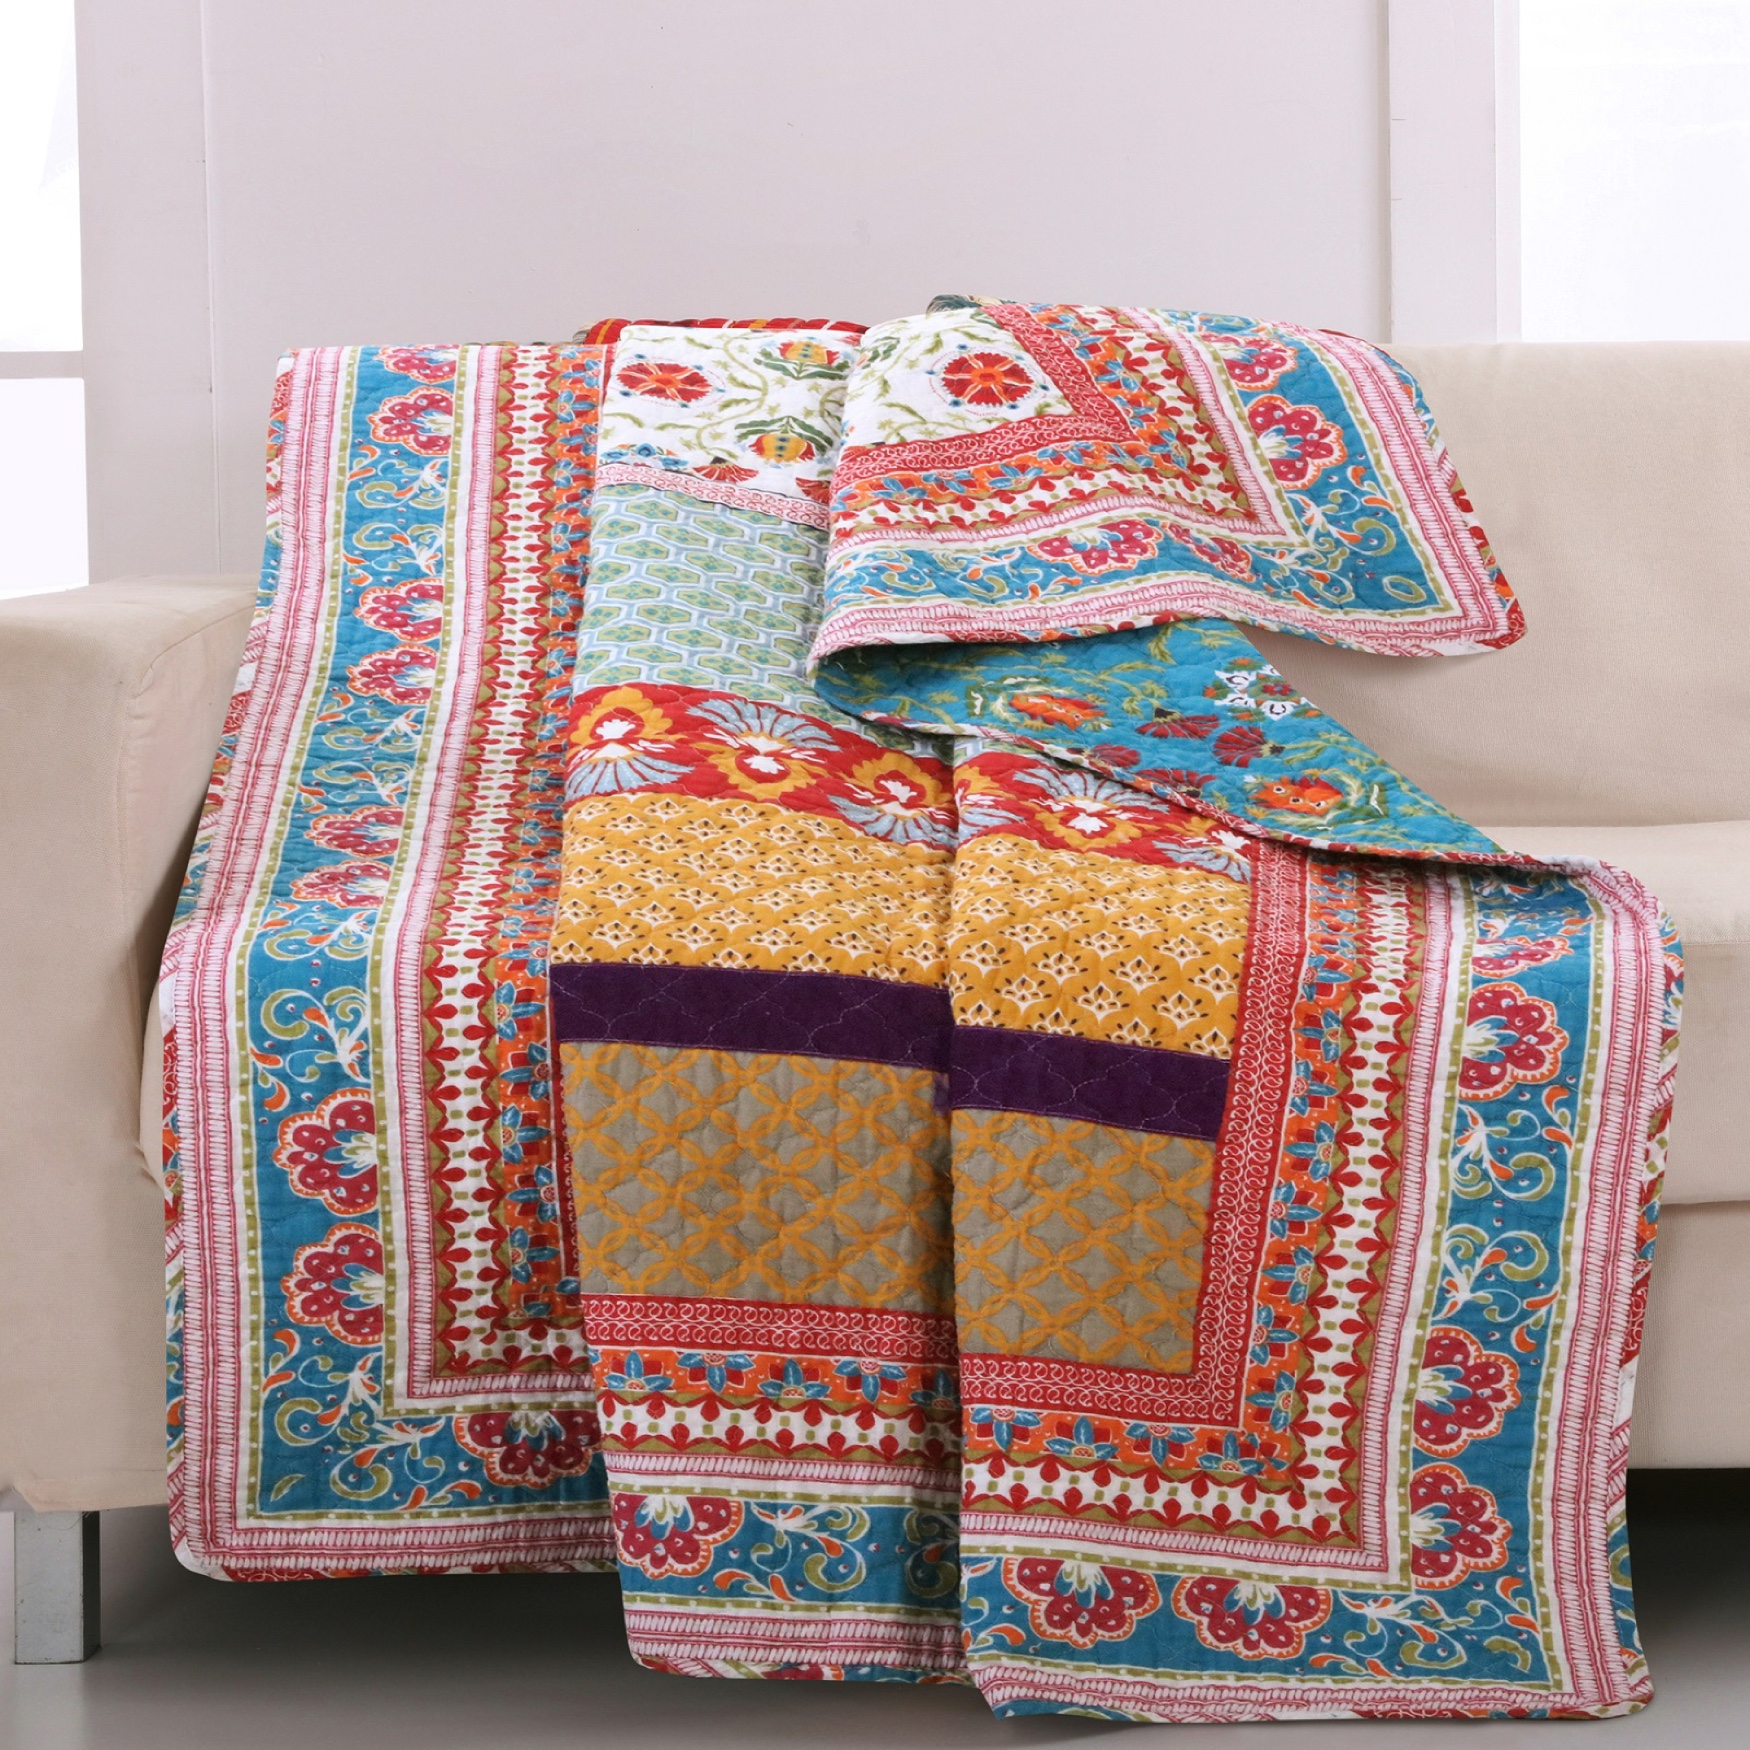 Greenland Home Fashions Thalia Quilted Throw Blanket, MULTI